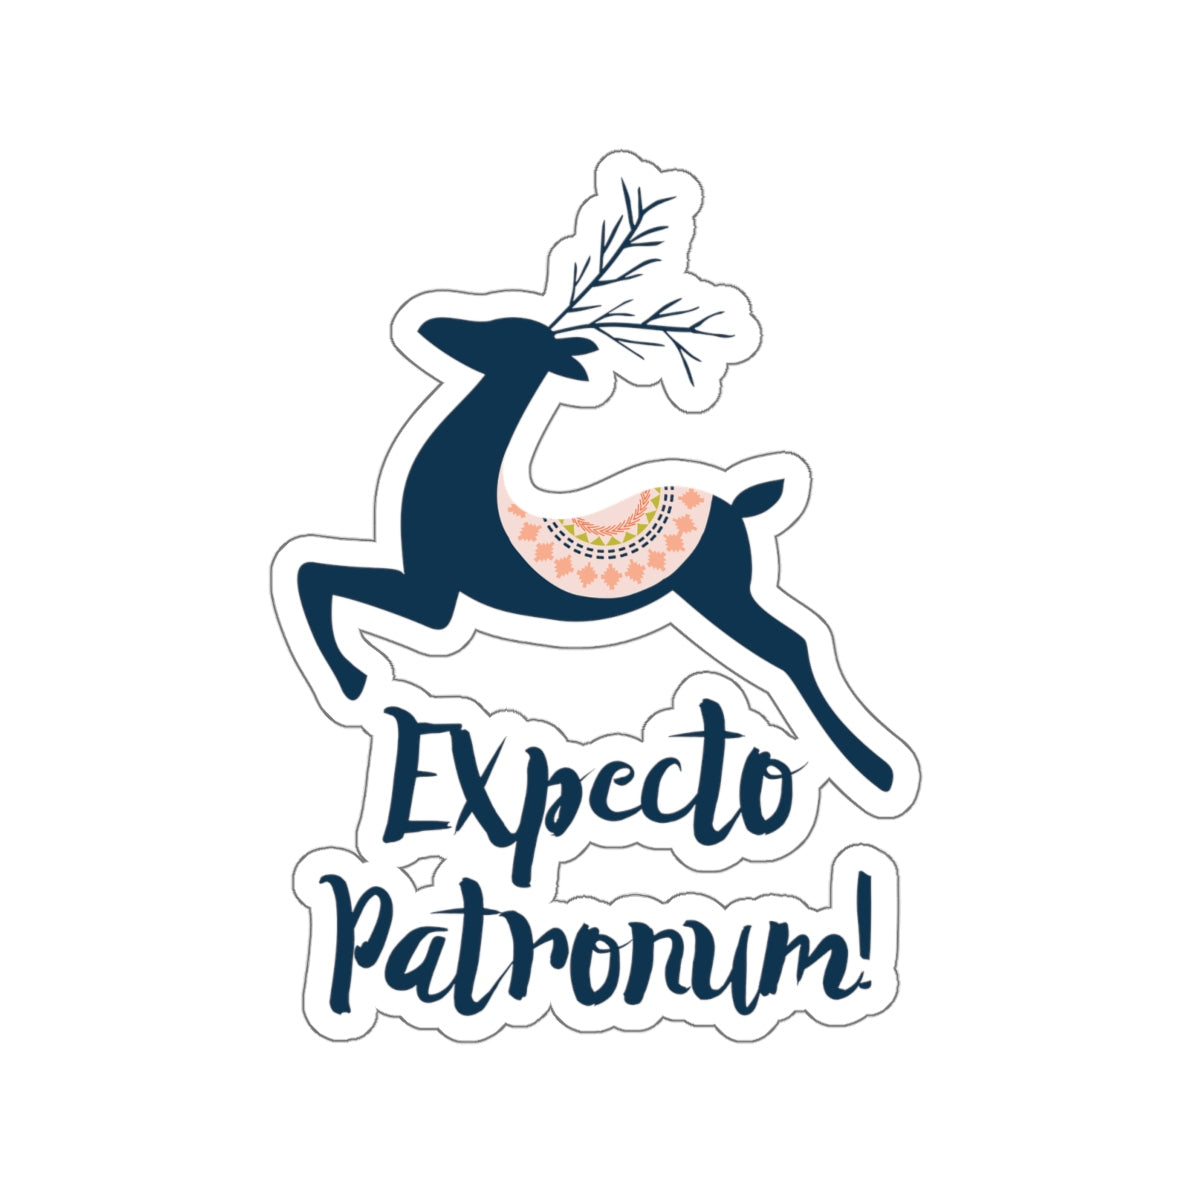 Expecto Patronum! Harry Potter Spell Sticker - LitLifeCo.